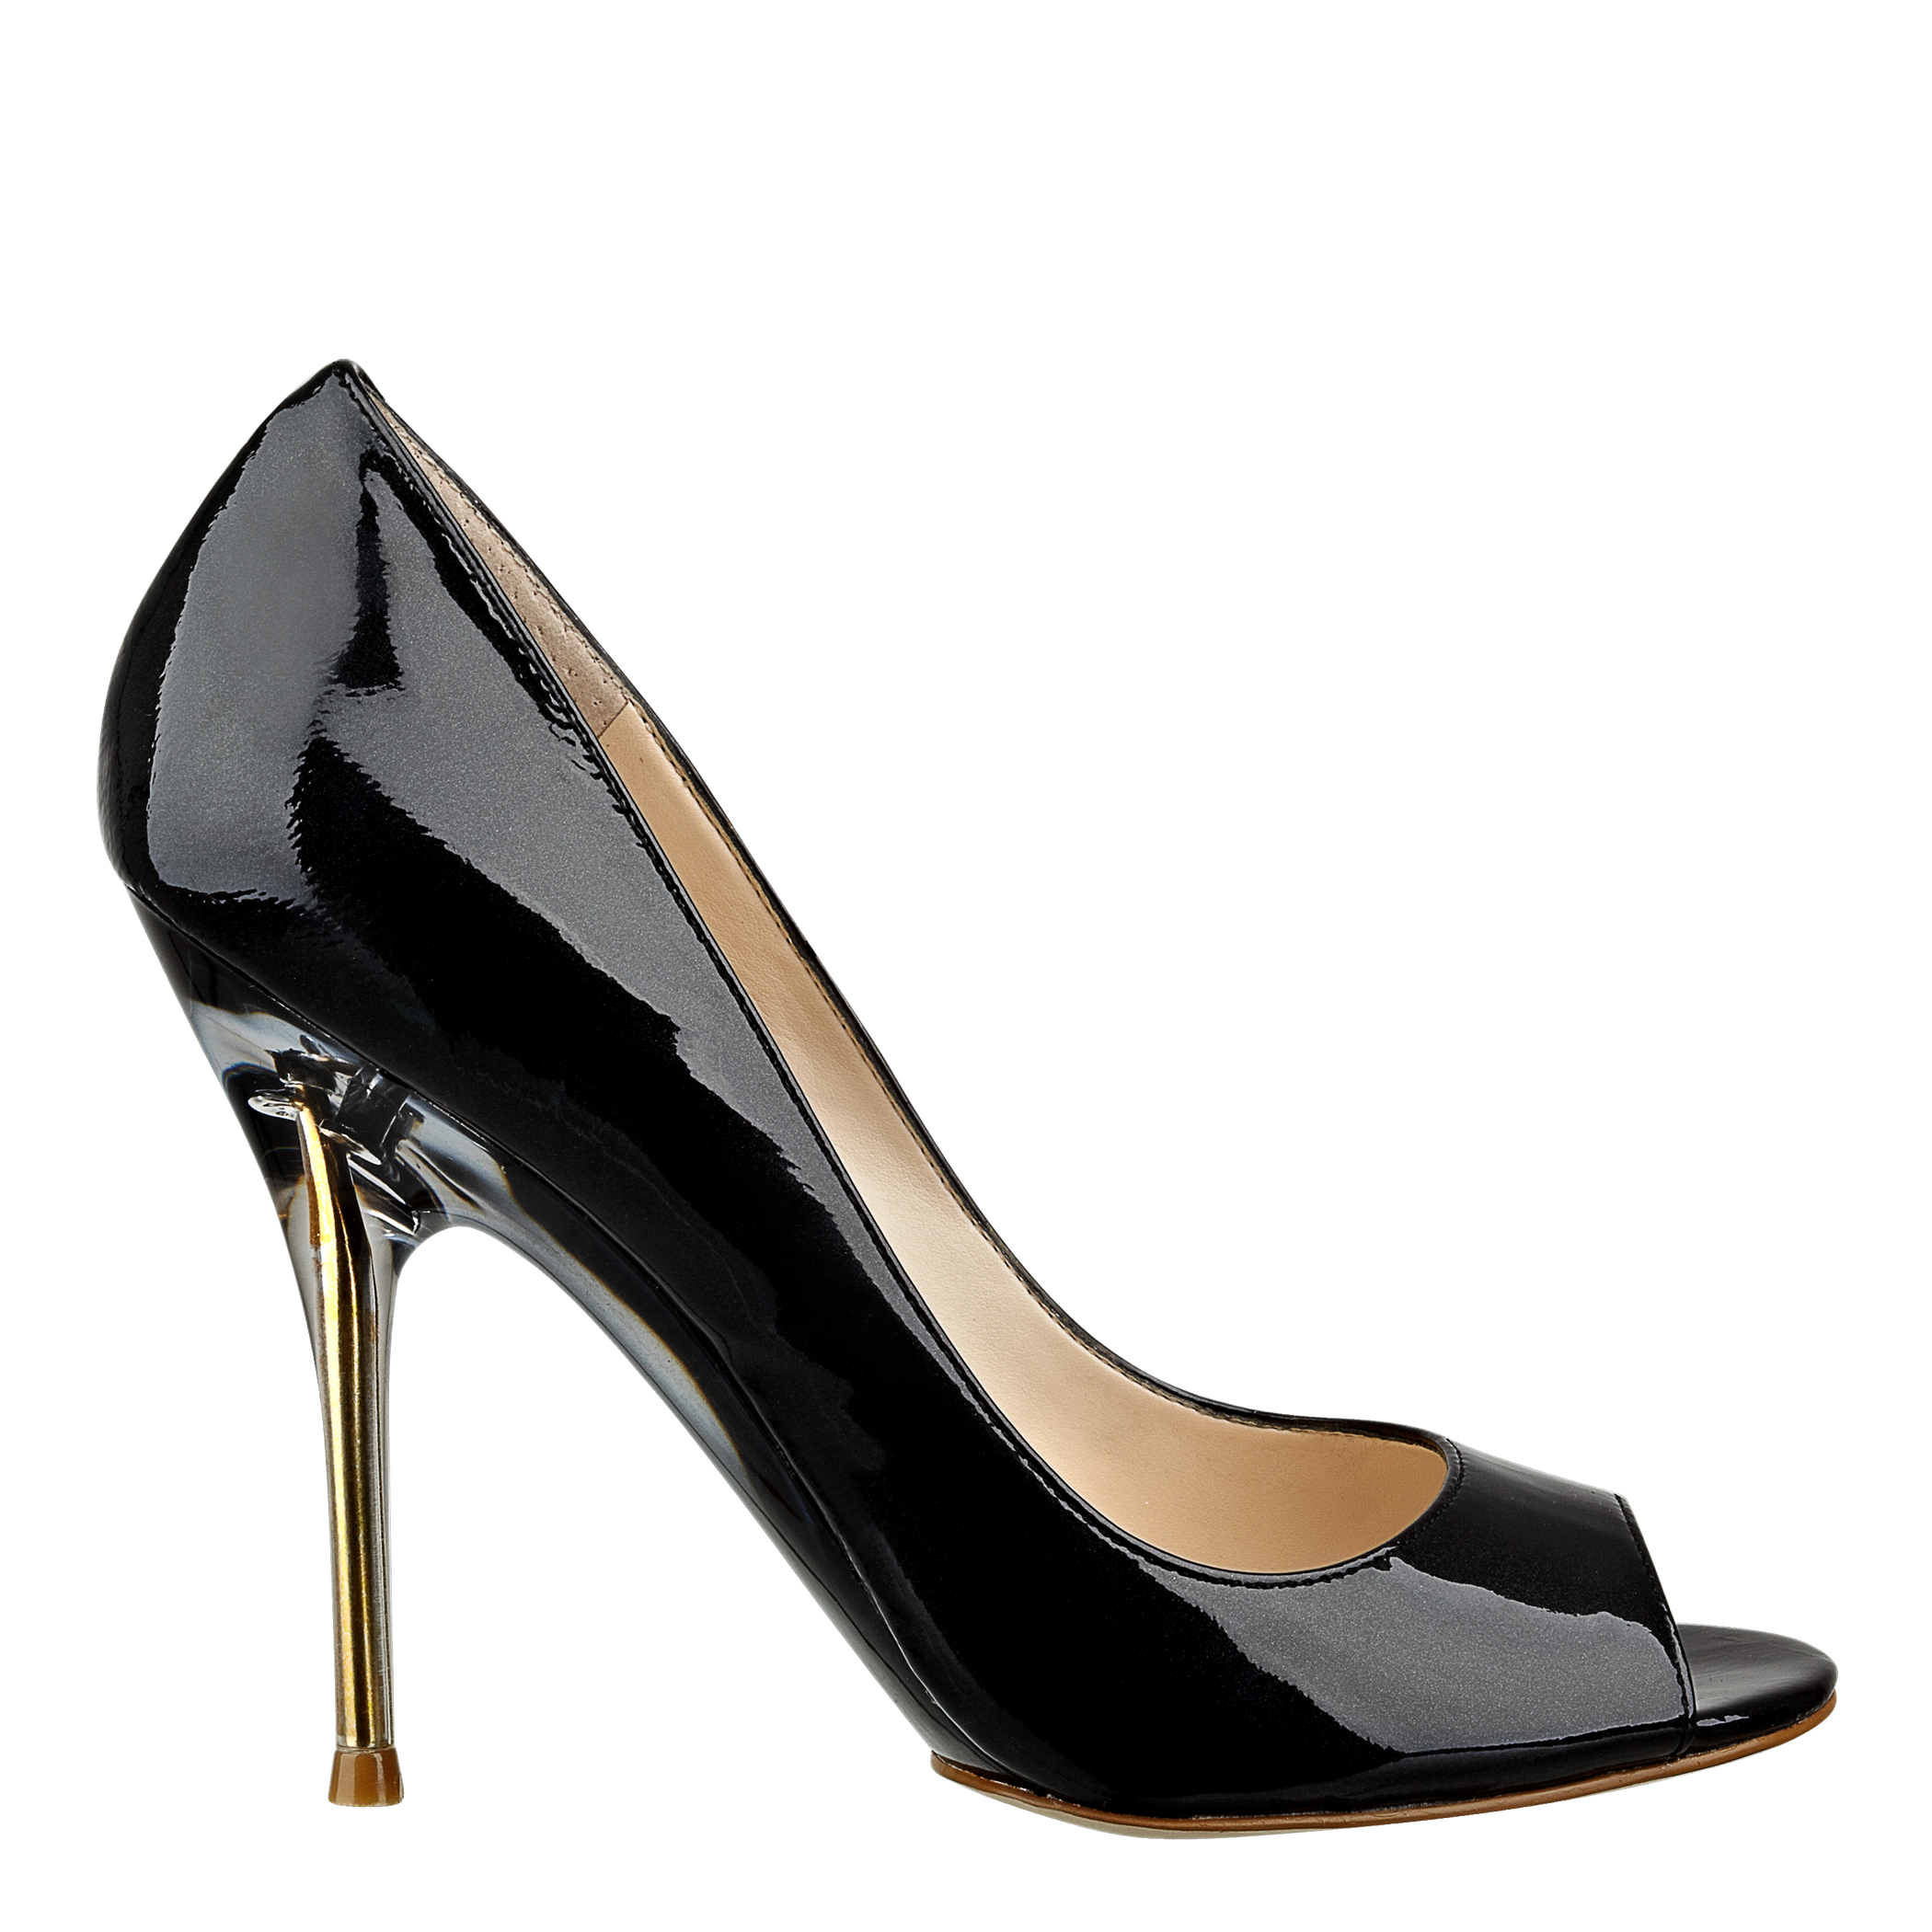 Nine West Delilah Peep Toe Pump In Black Dark Grey Patent